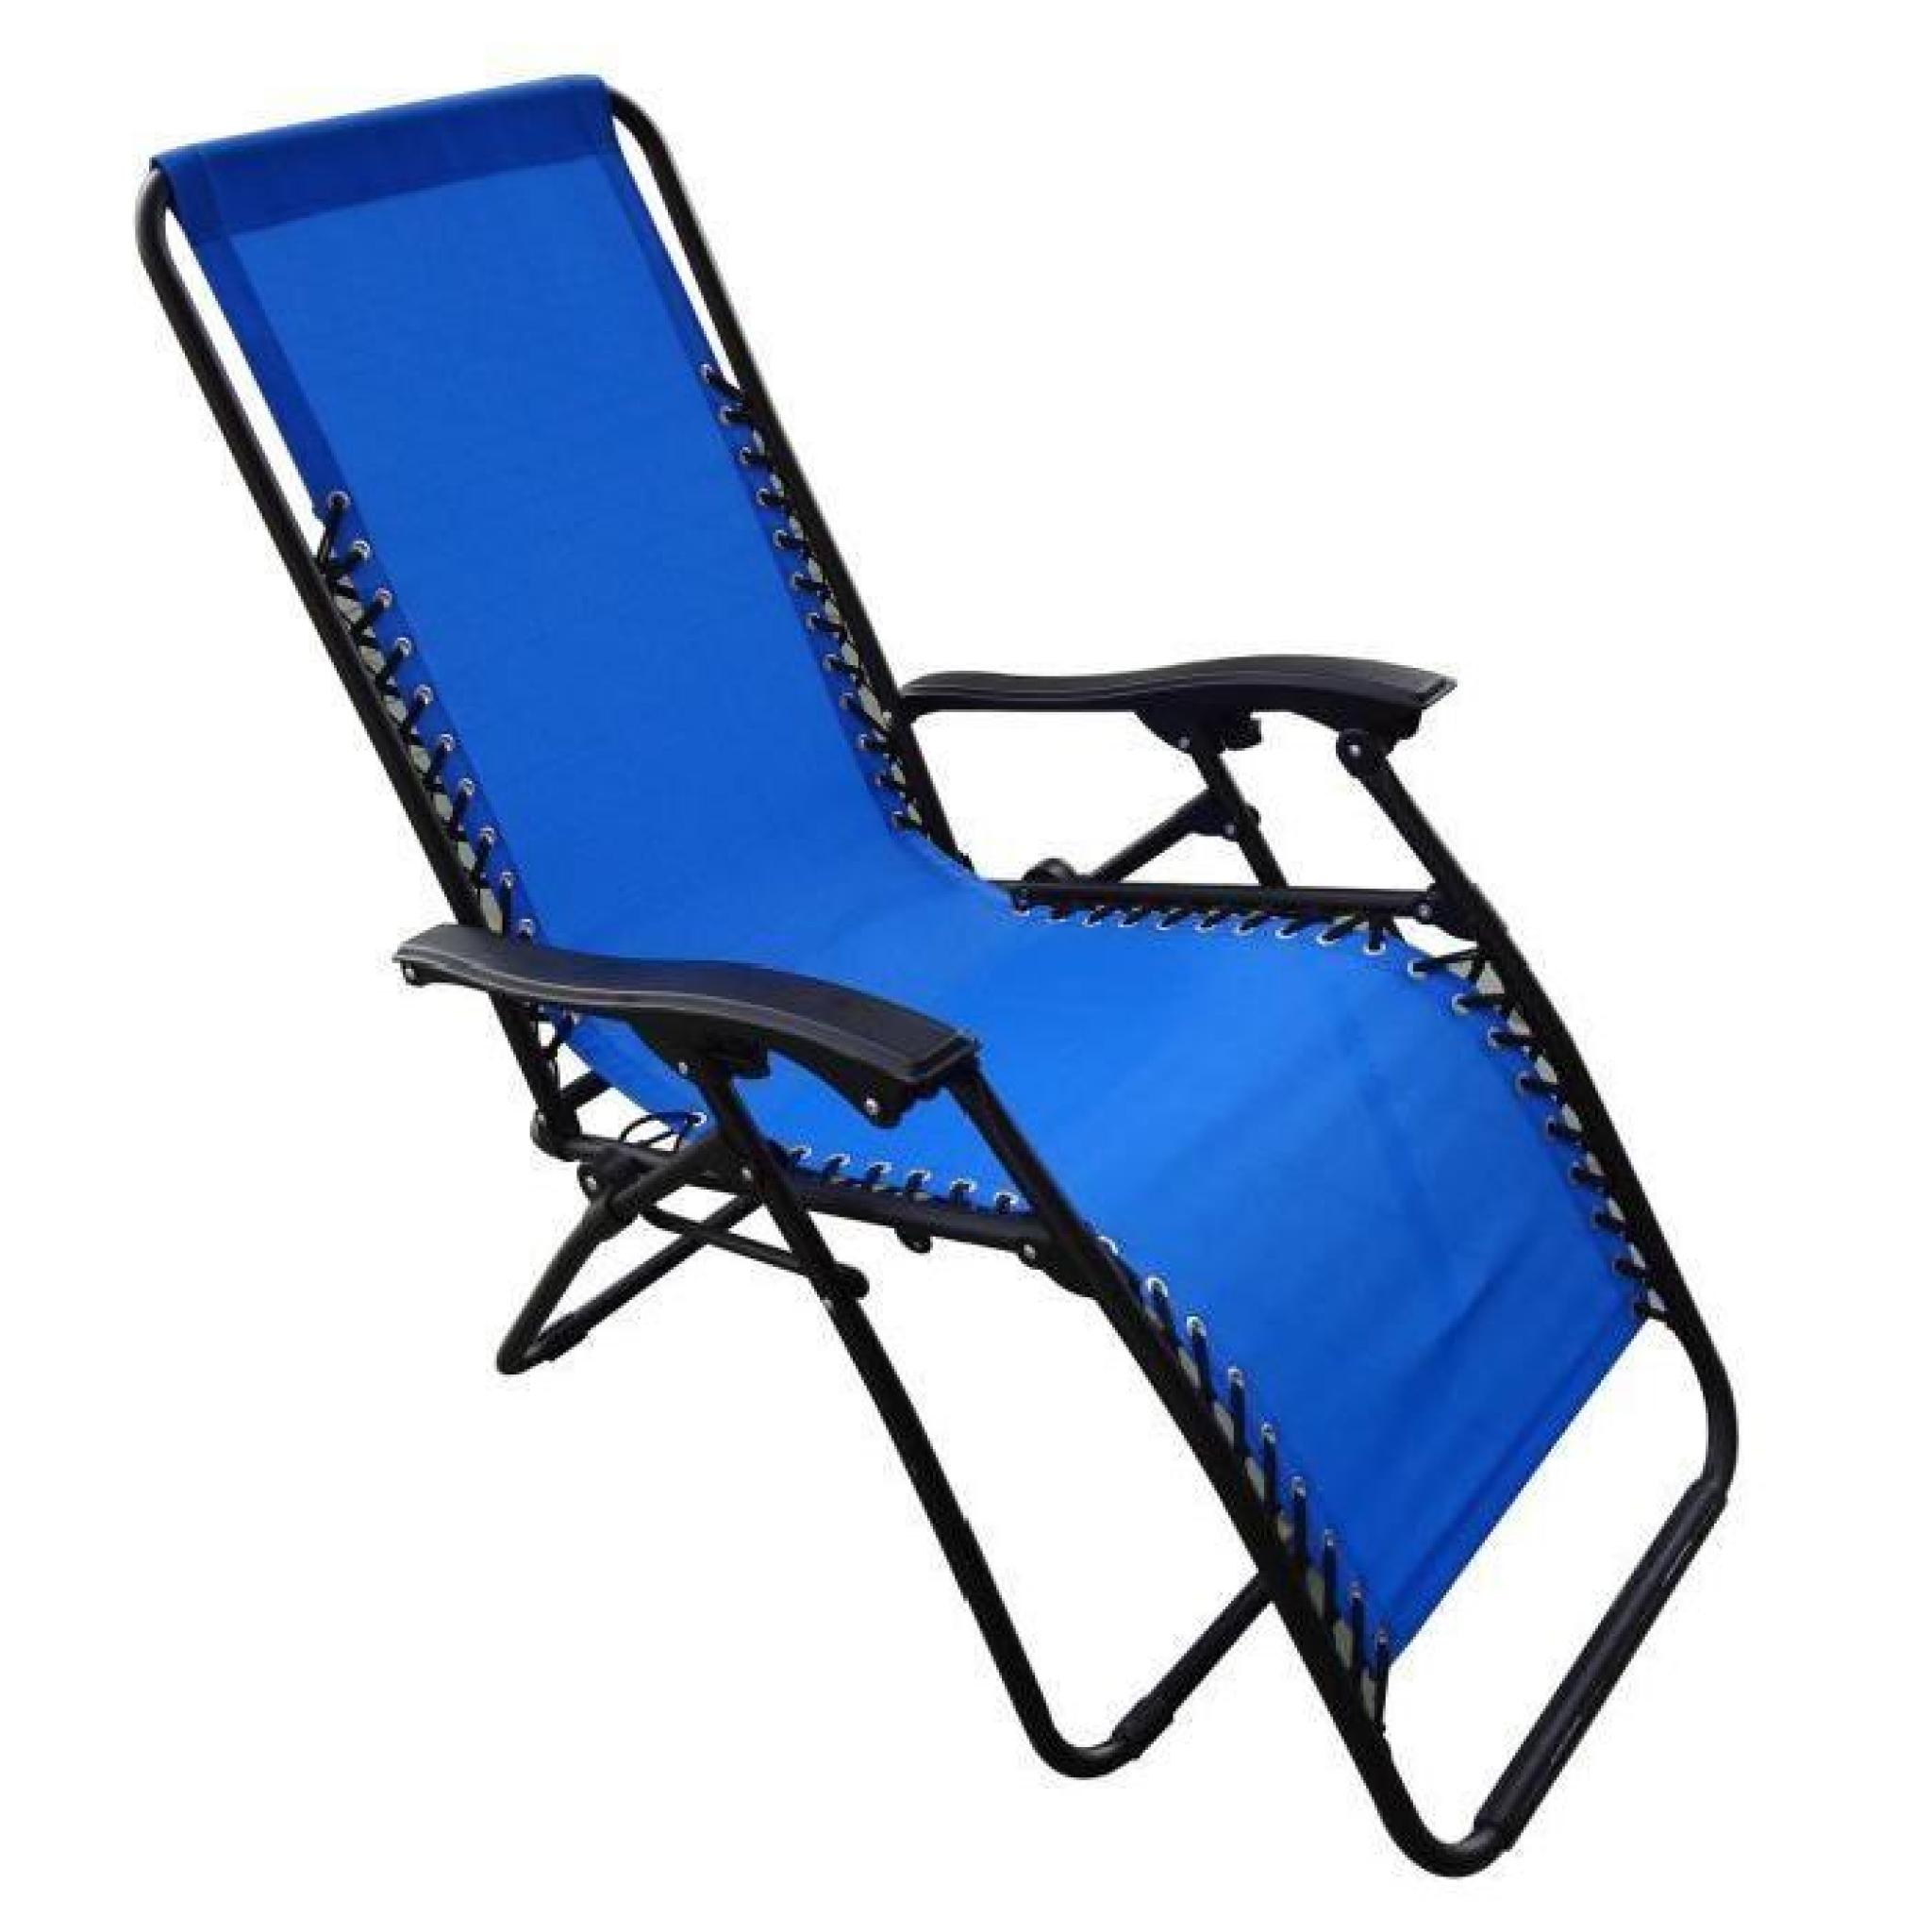 chaise pliante en toile camping bleu achat vente. Black Bedroom Furniture Sets. Home Design Ideas